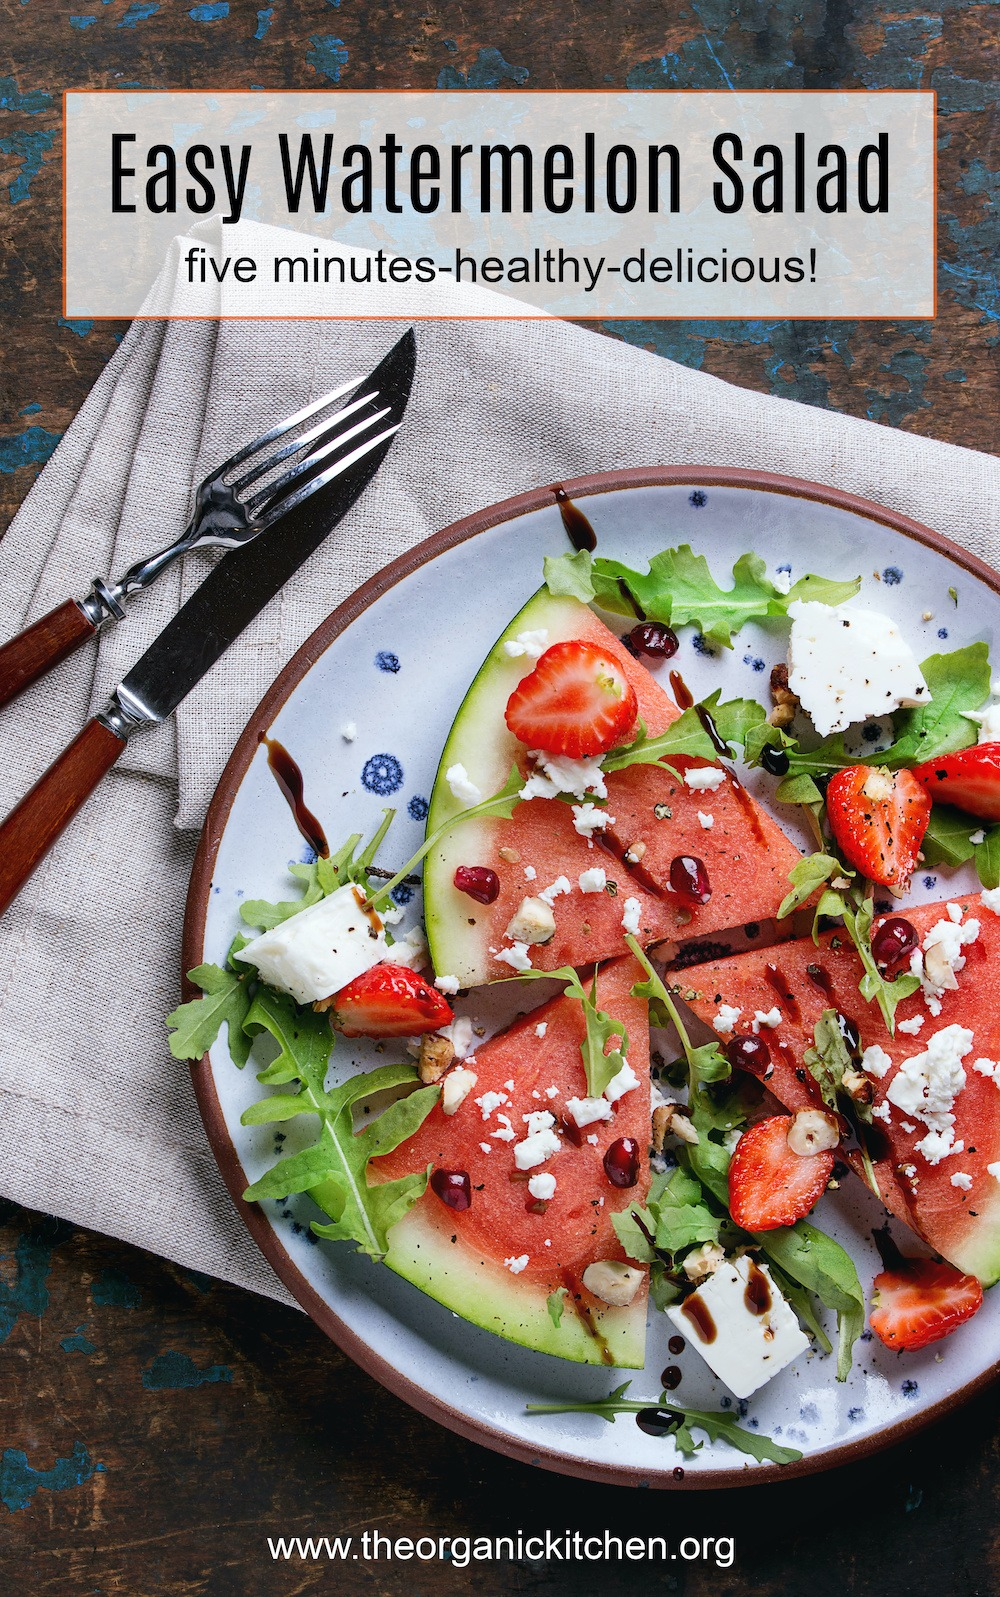 Easy Watermelon Salad with feta and greens on blue plate